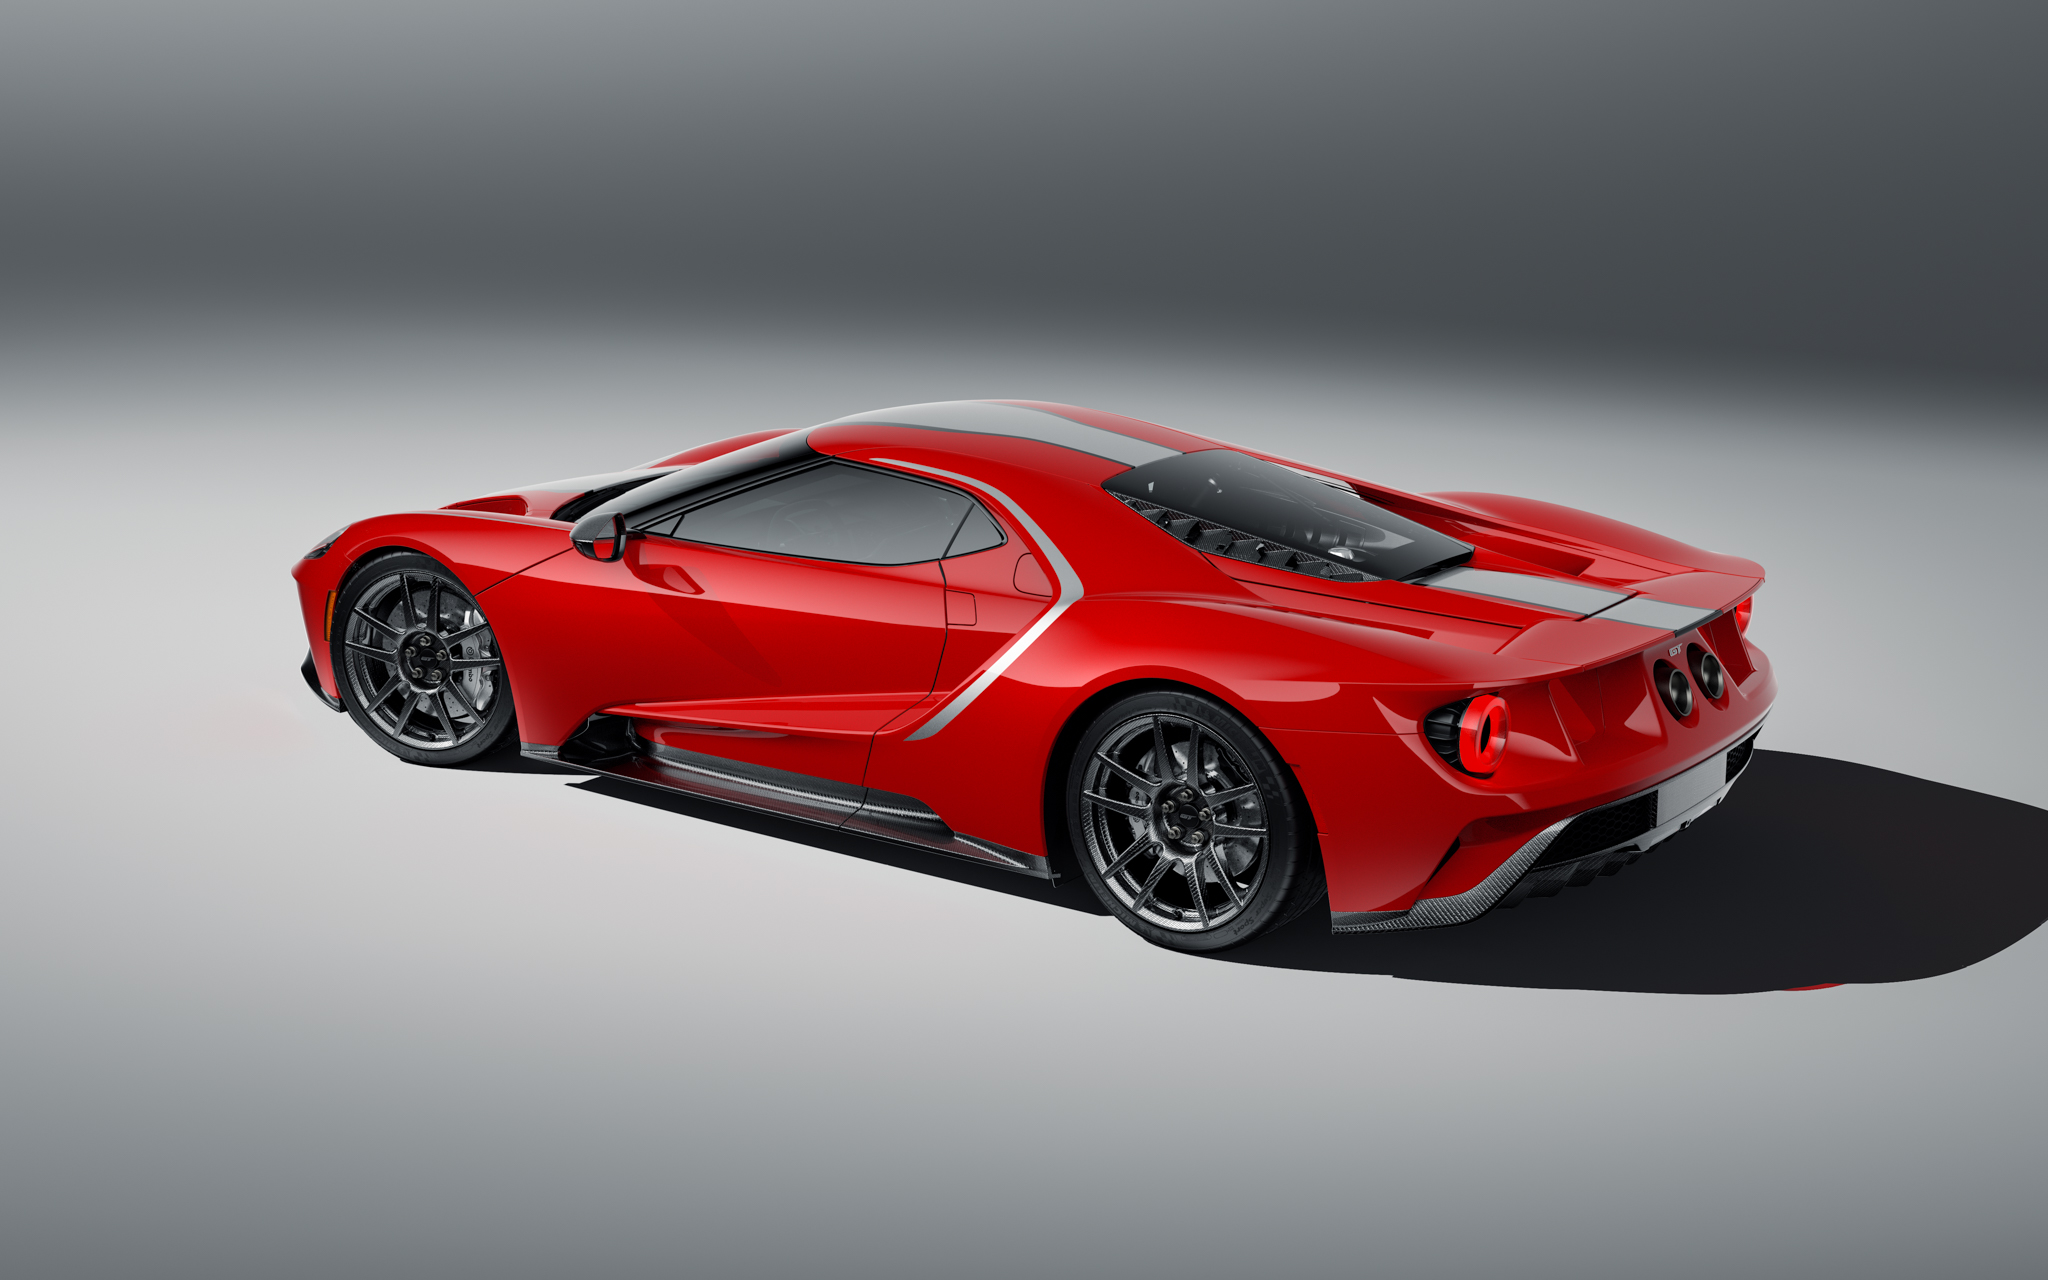 2021 Ford GT Studio Series rear red